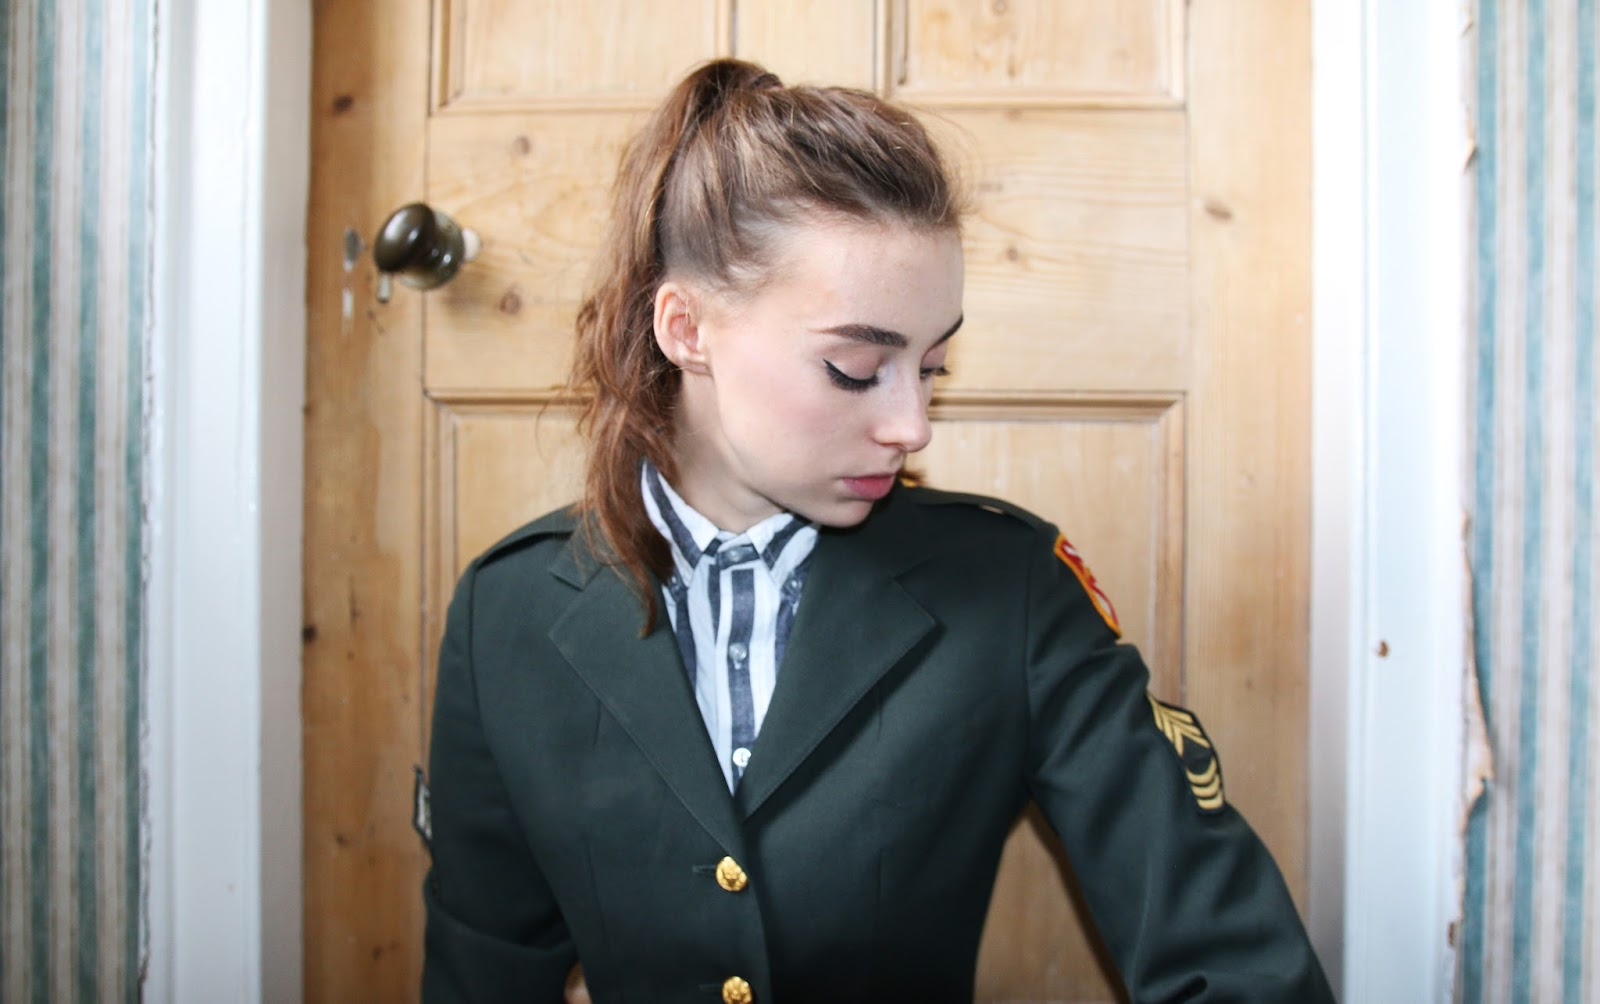 army jacket, mandeville sisters, beauty blogger, fashion blogger, military jacket, military, army, fashion, ootd, vintage jacket, rokit, grace mandeville, ootd,